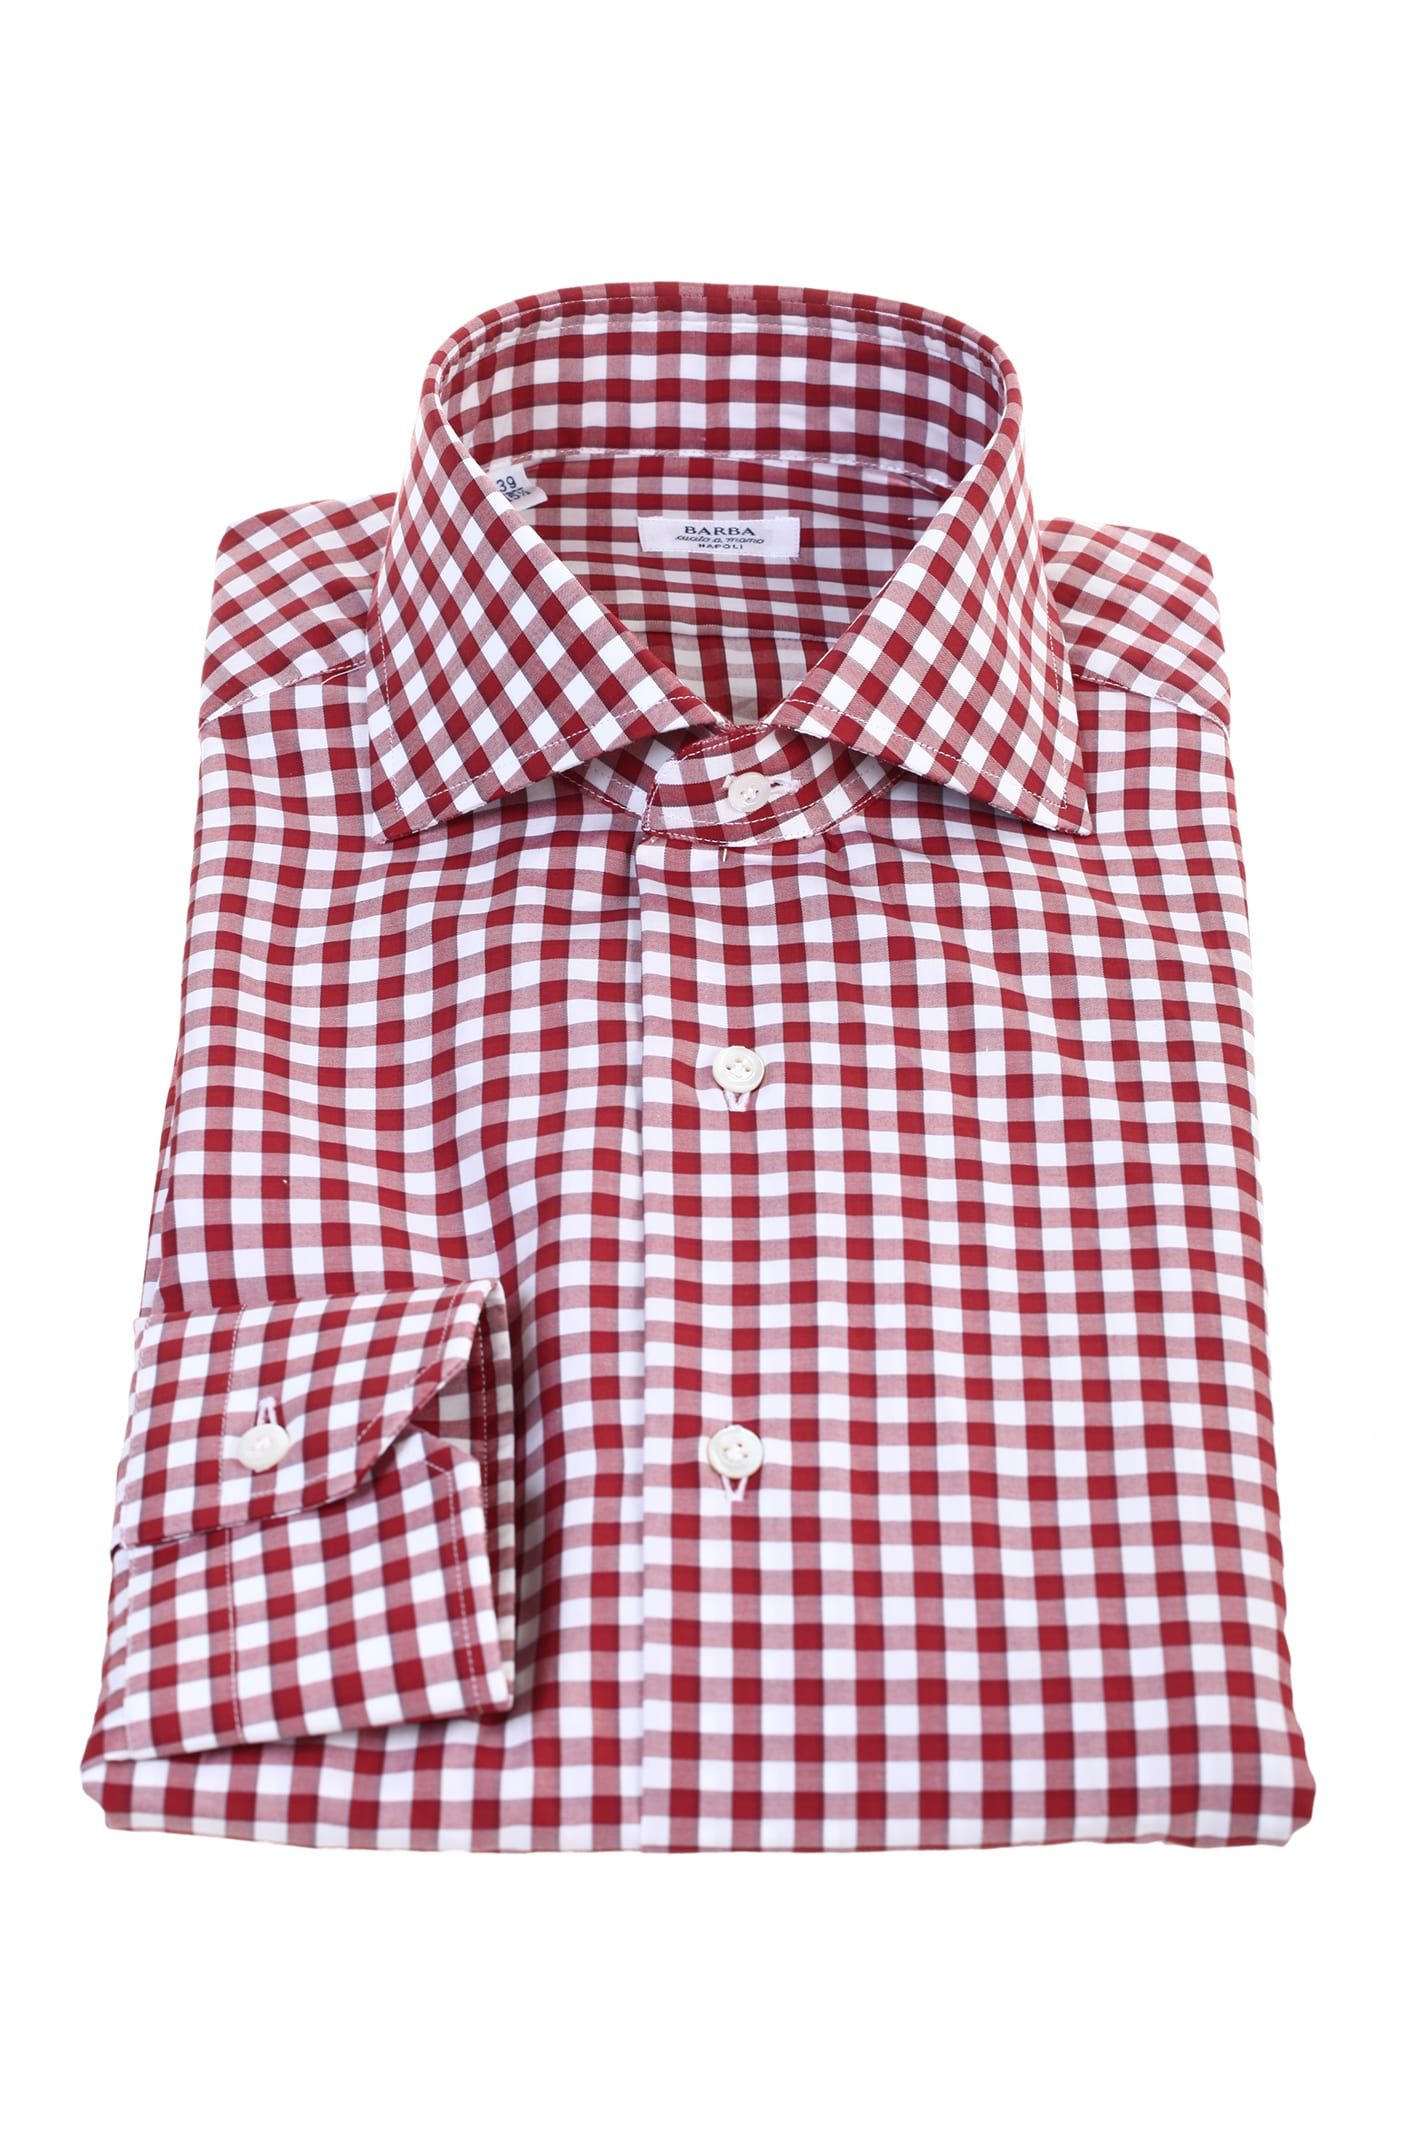 Barba red and white small checked cotton shirt